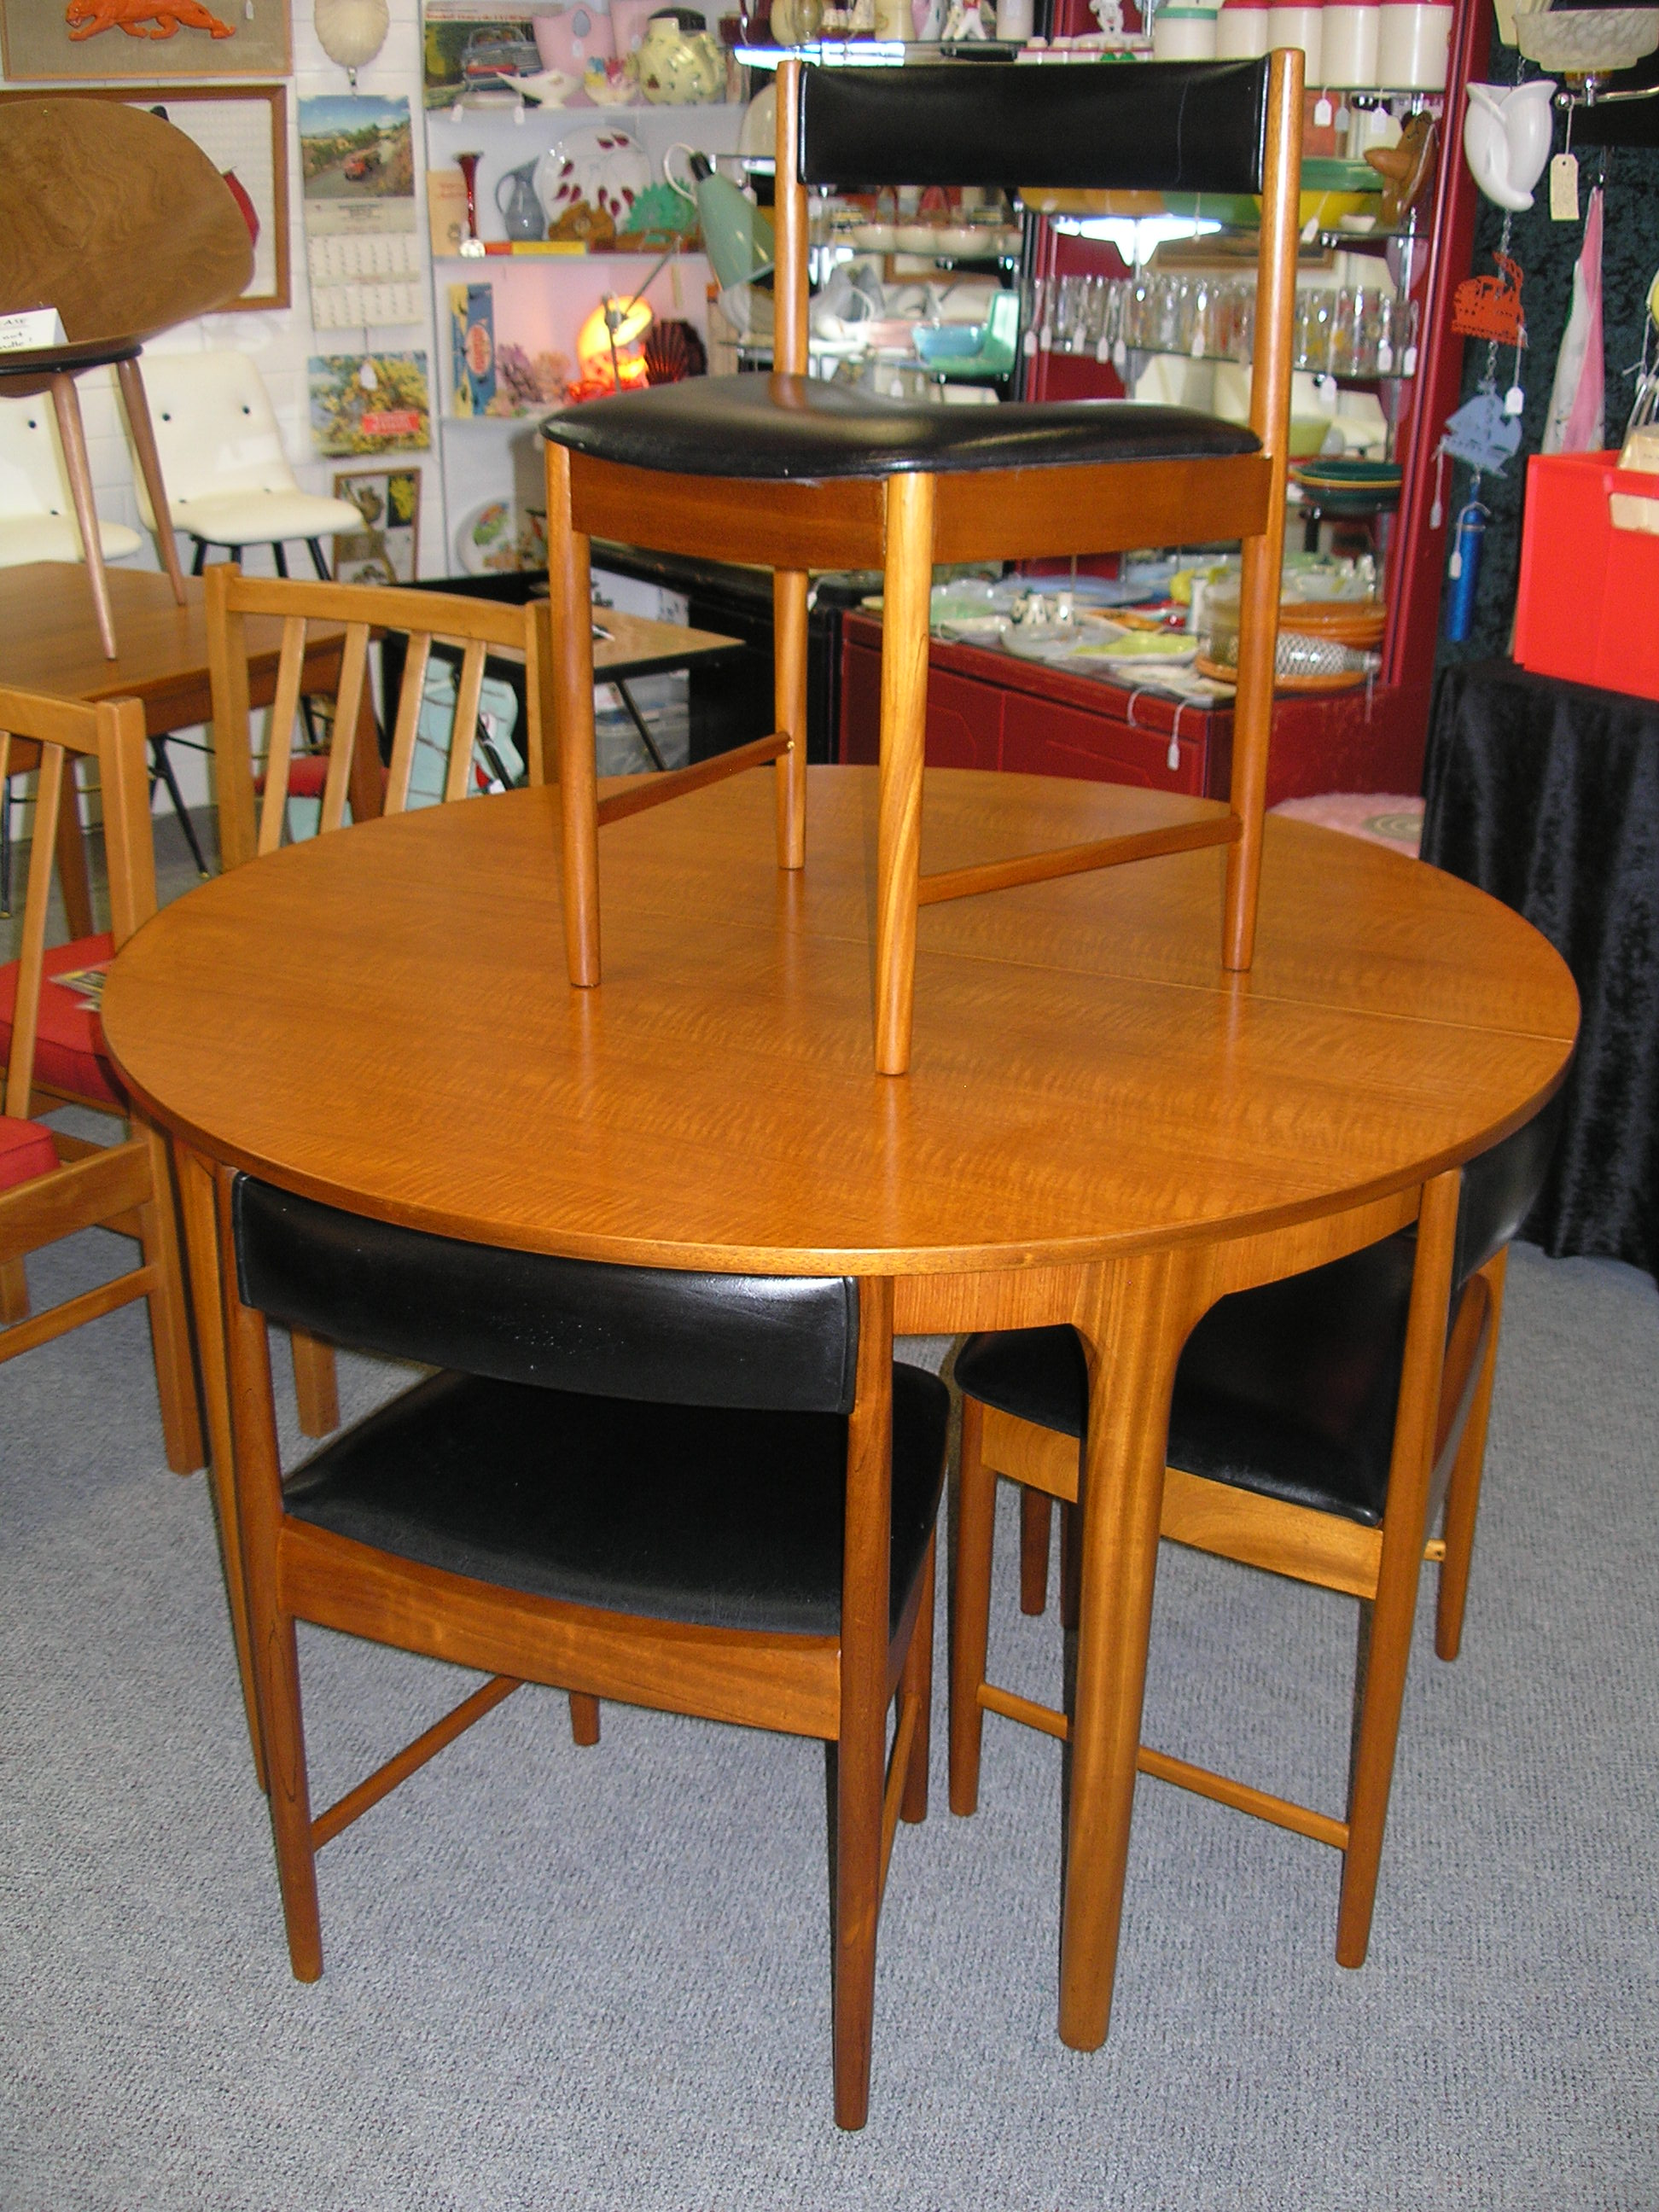 1970s dining suite by mcintosh retro and vintage dining  u0026 kitchen furniture sold  rh   canberraantiques com